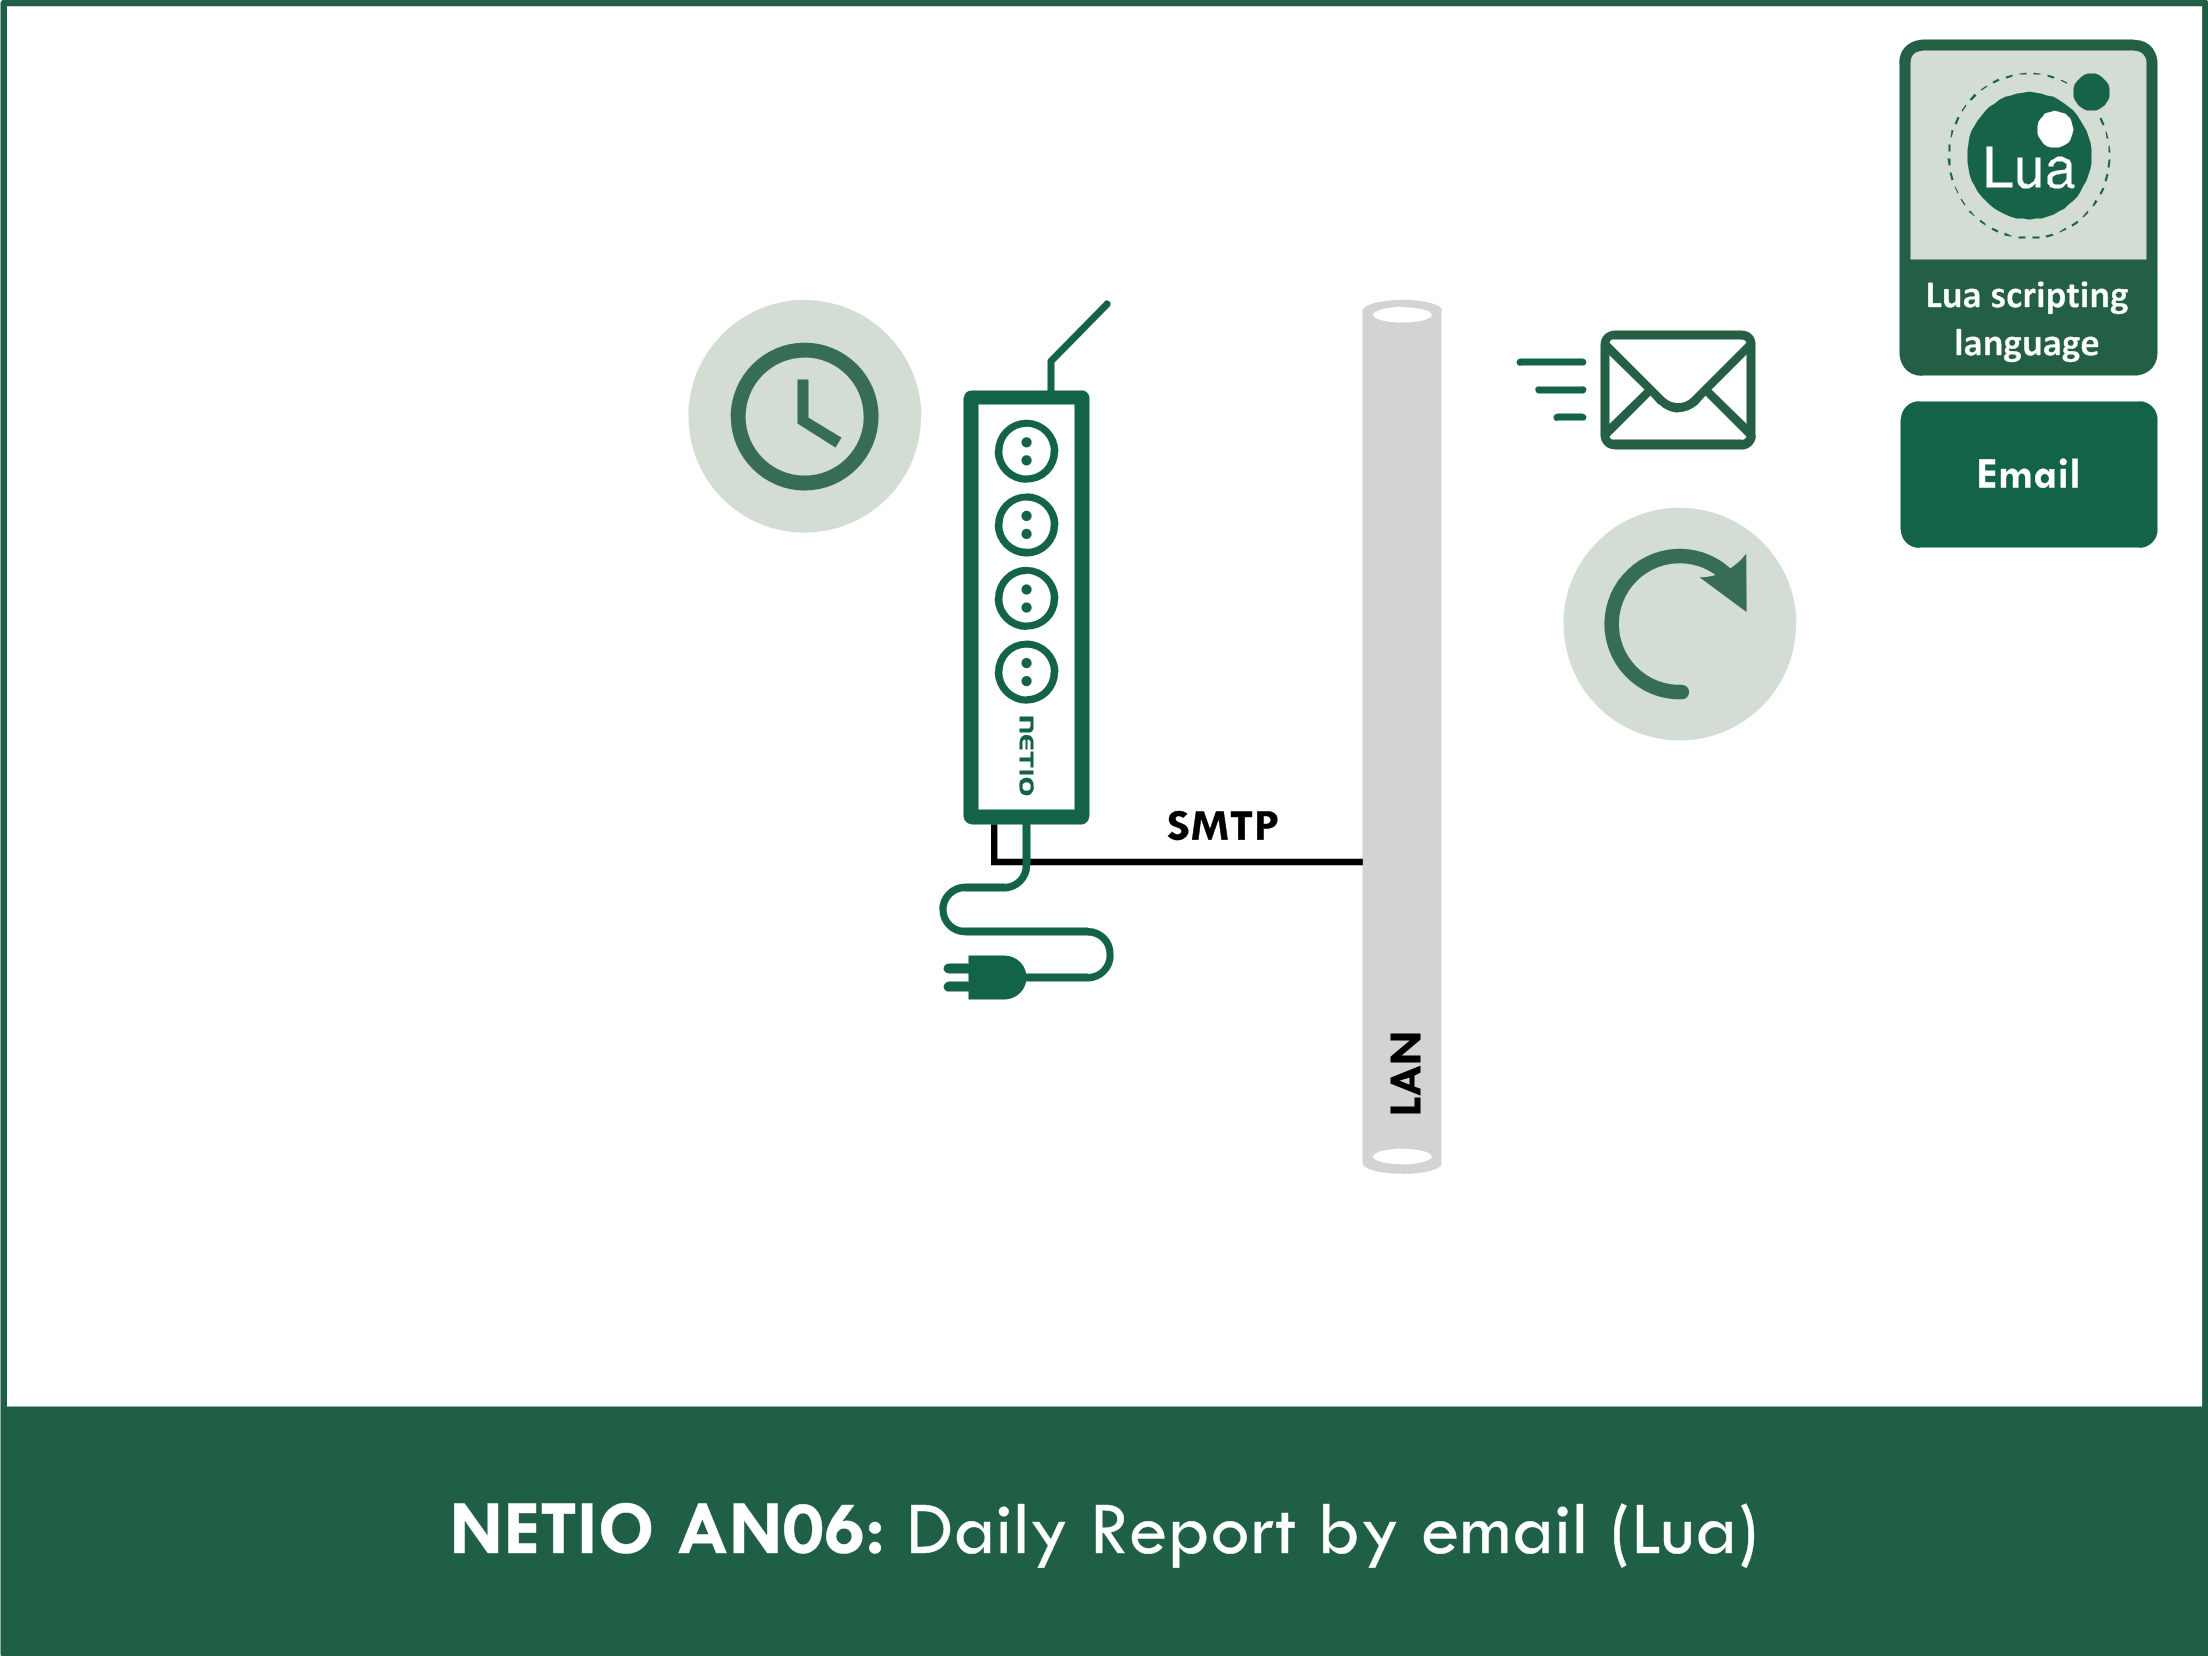 NETIO AN06 Daily report by e-mail (Lua)